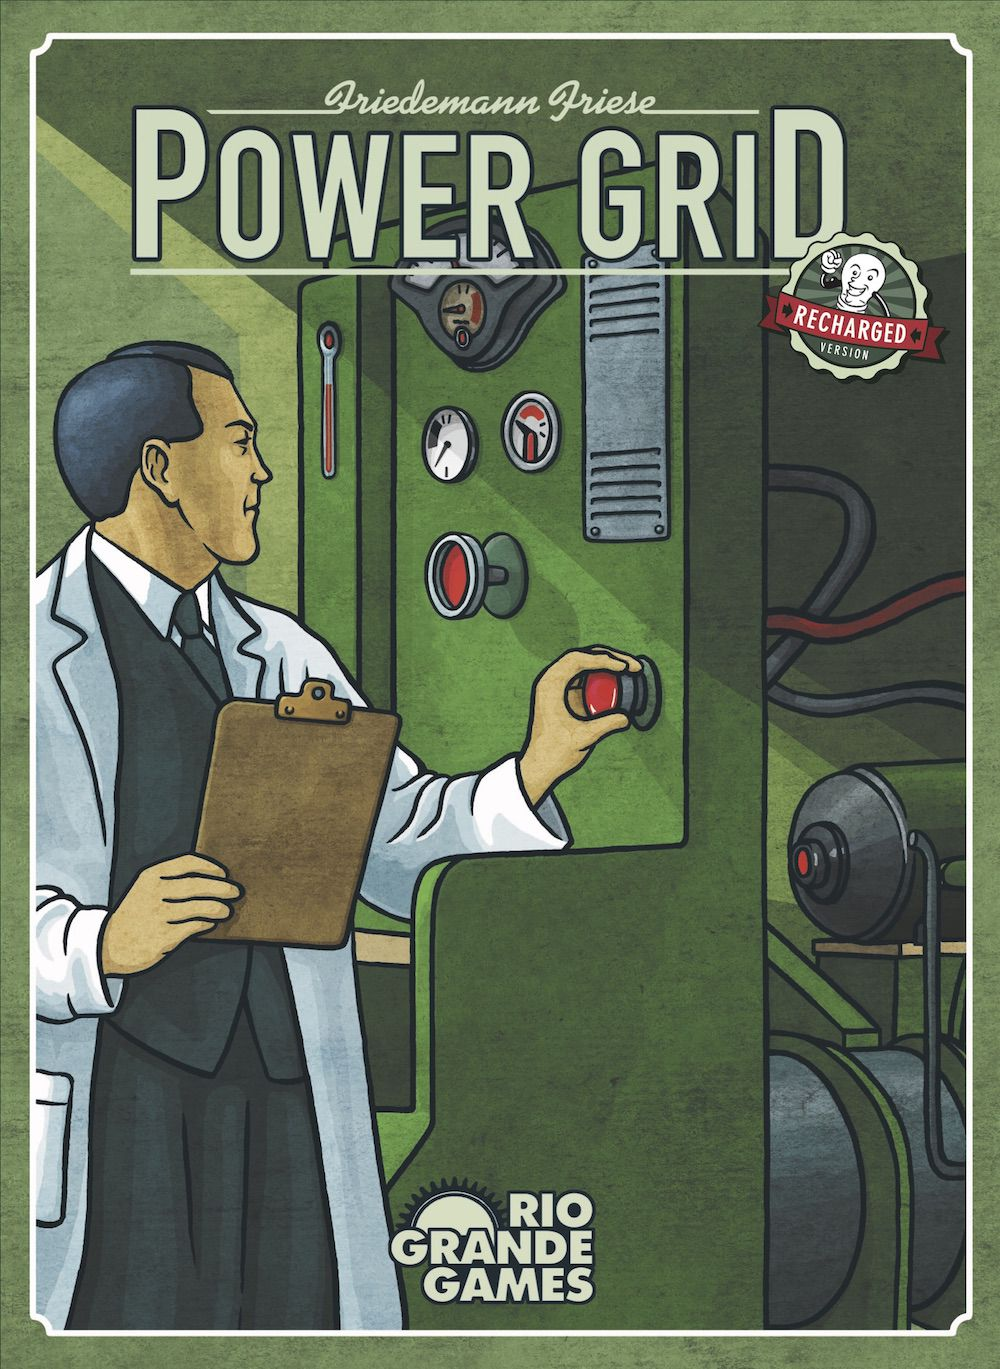 Power Grid - Rent A Meeple